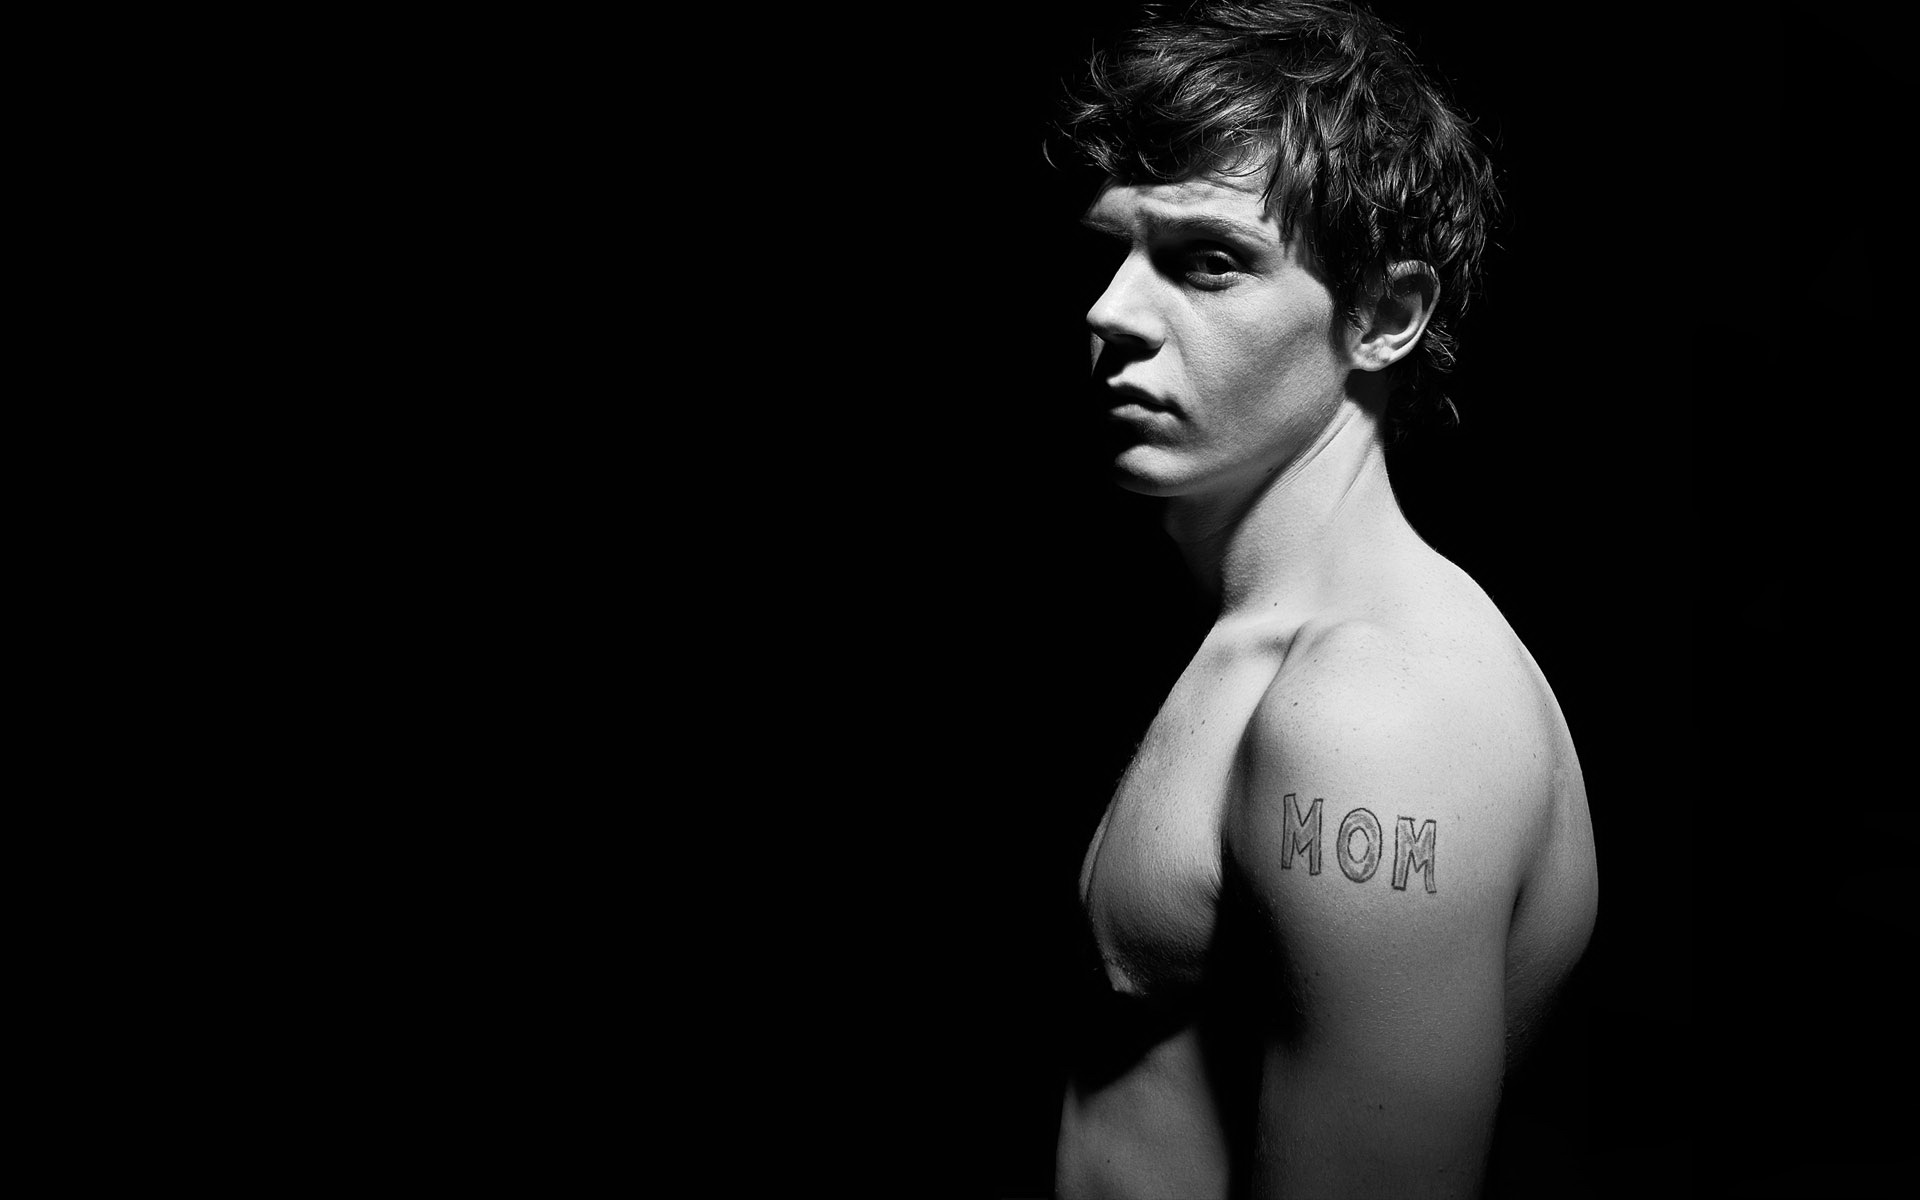 Evan Peters Wallpapers High Resolution and Quality Download